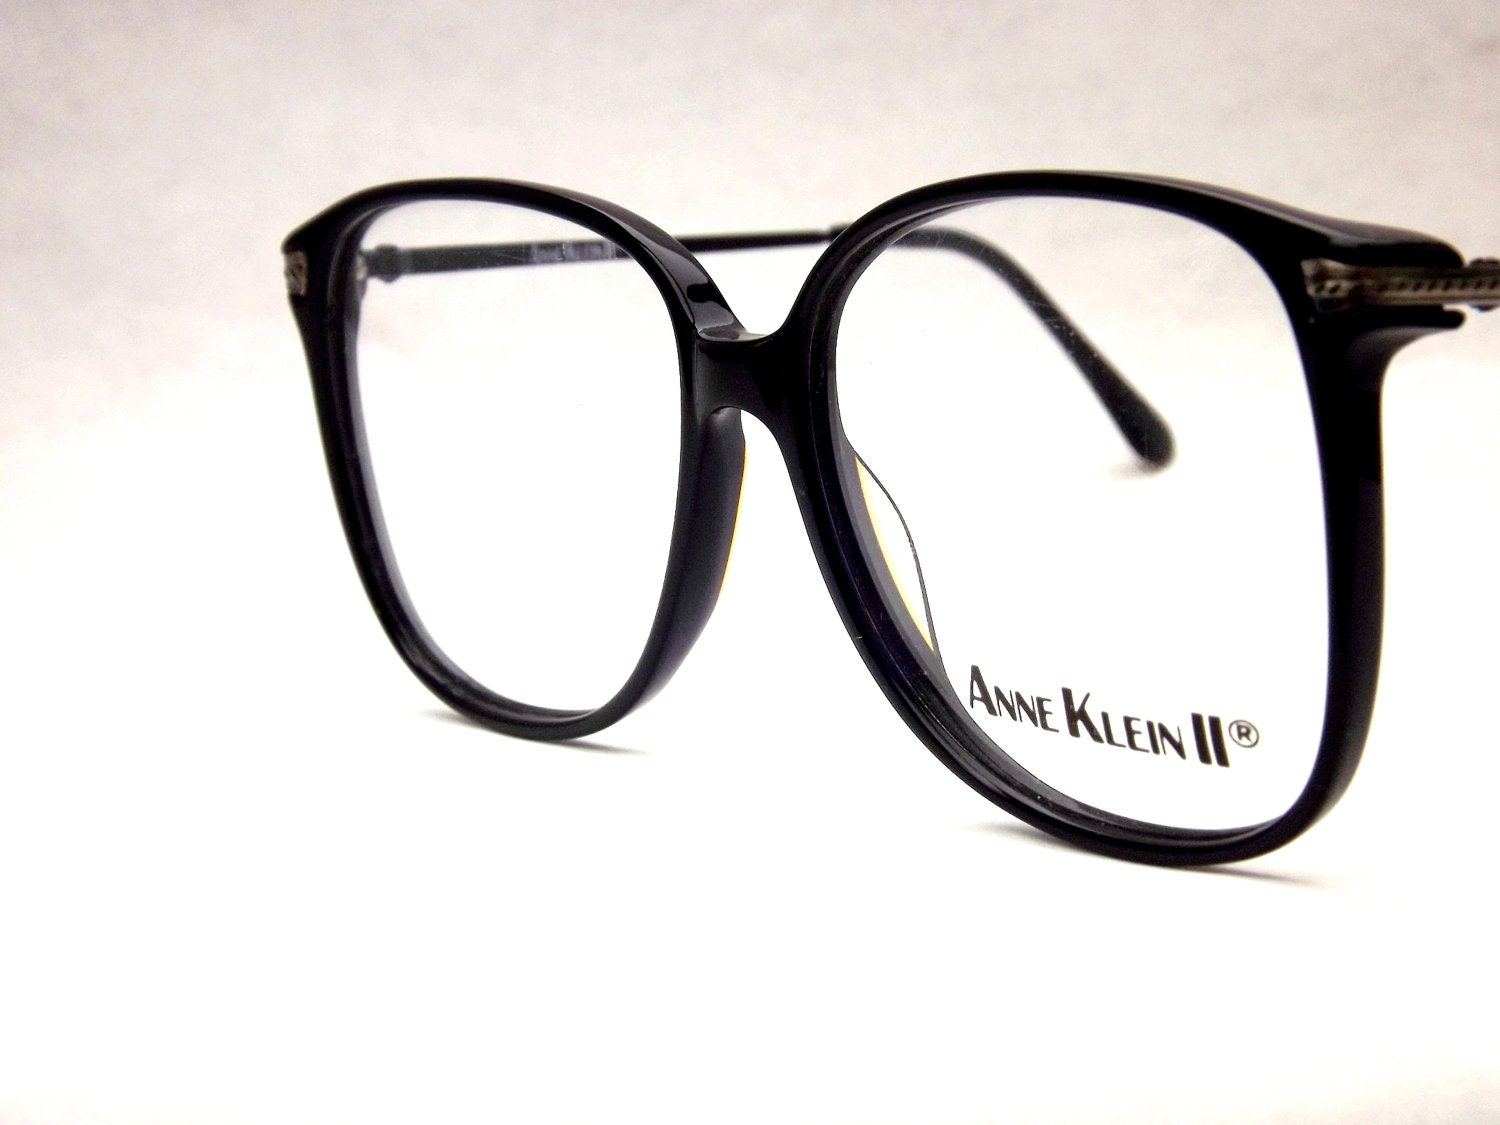 Big Square Eyeglasses Designer Anne Klein 80s Vintage / Womens